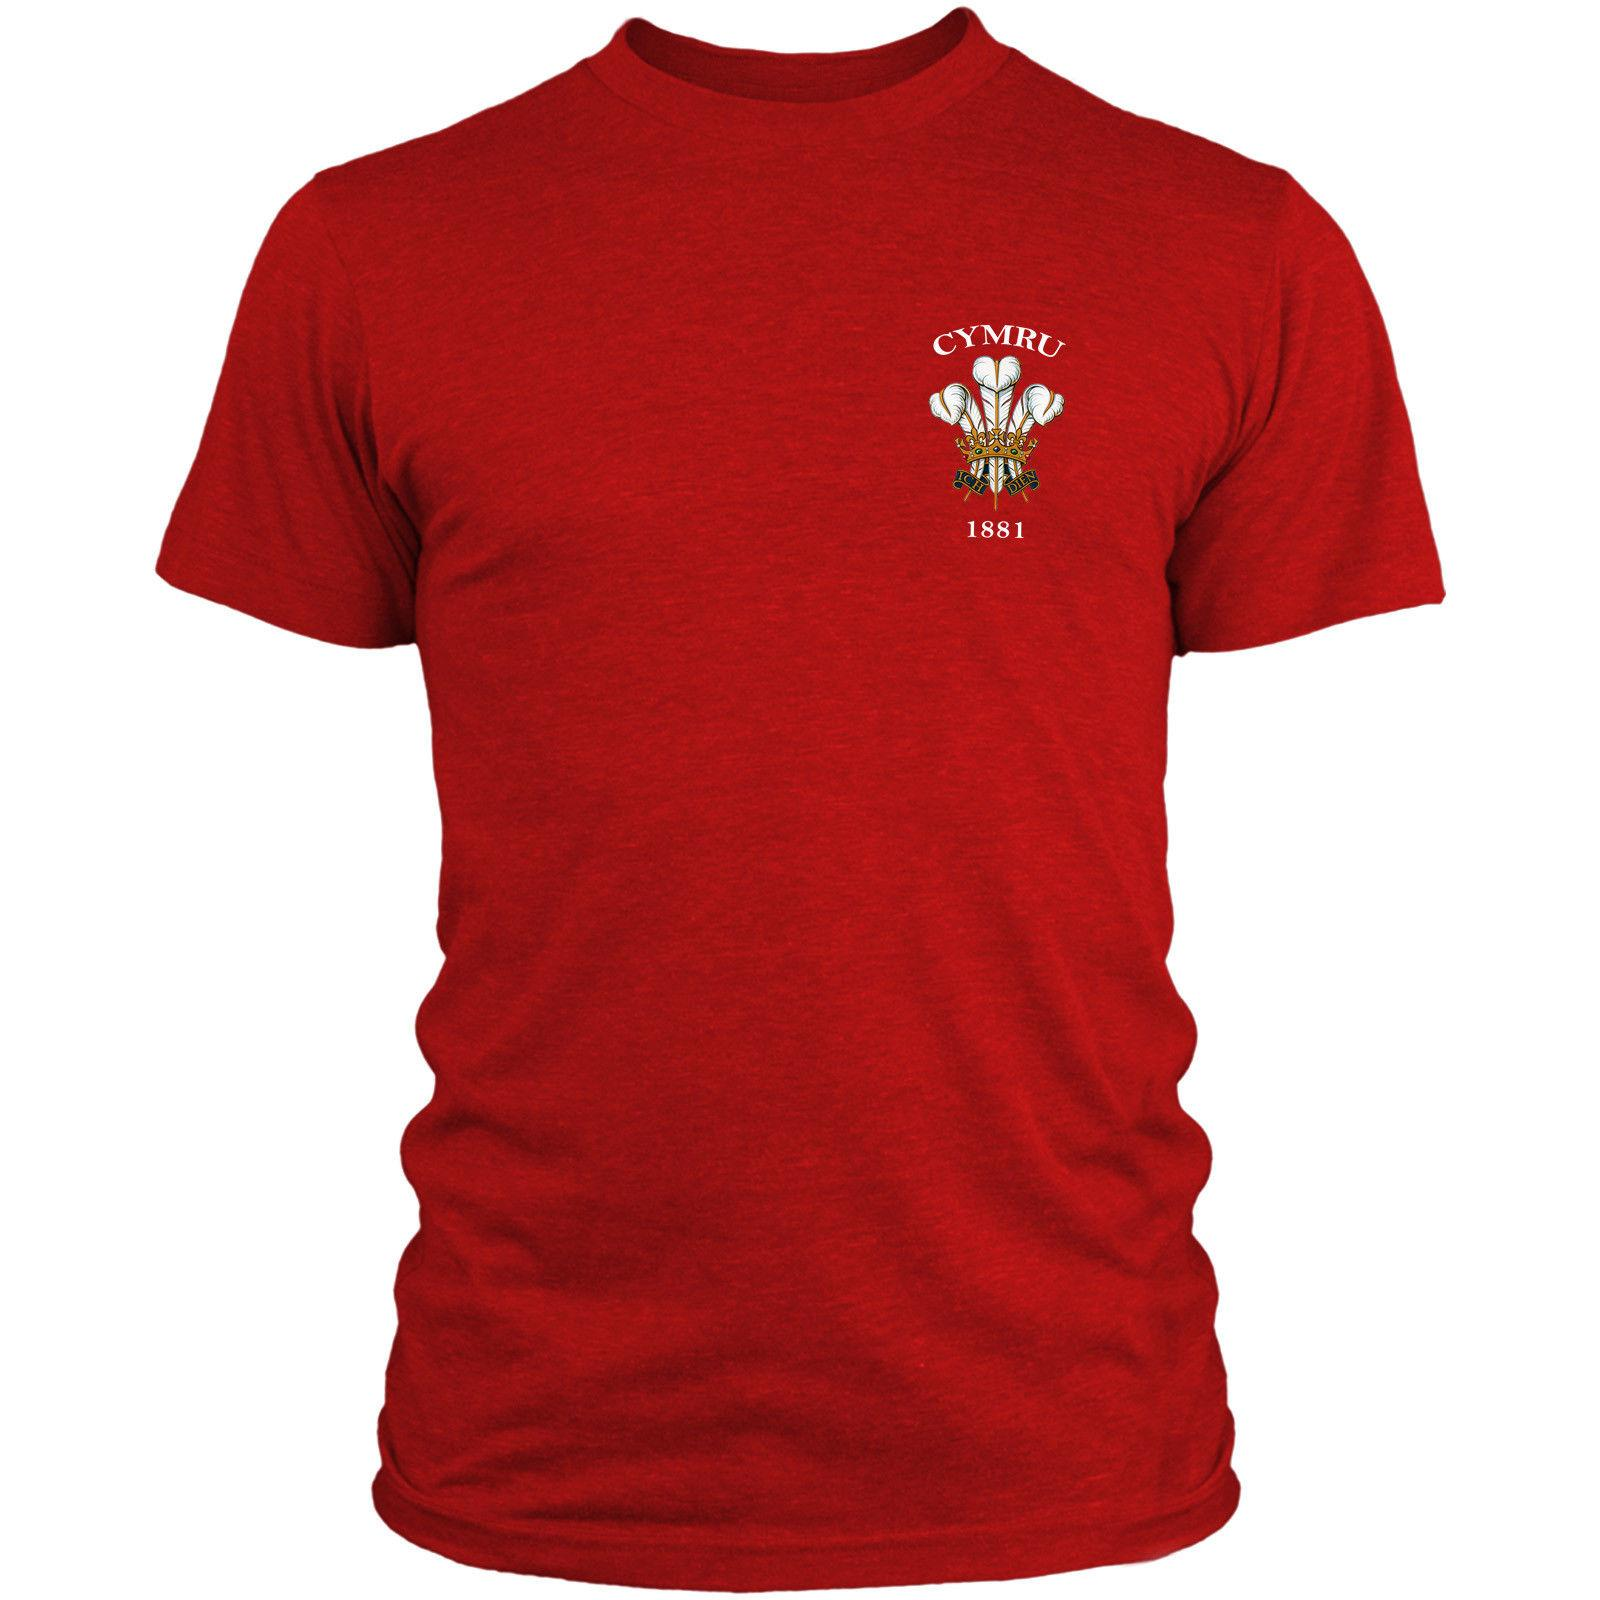 18926871437 Cymru Welsh Retro Rugby T Shirt Vintage Supporter Fan 6 Nations Top Men  Wales L3 Fun T Shirts Online Tshirt And Shirt From Designtshirts201806, ...